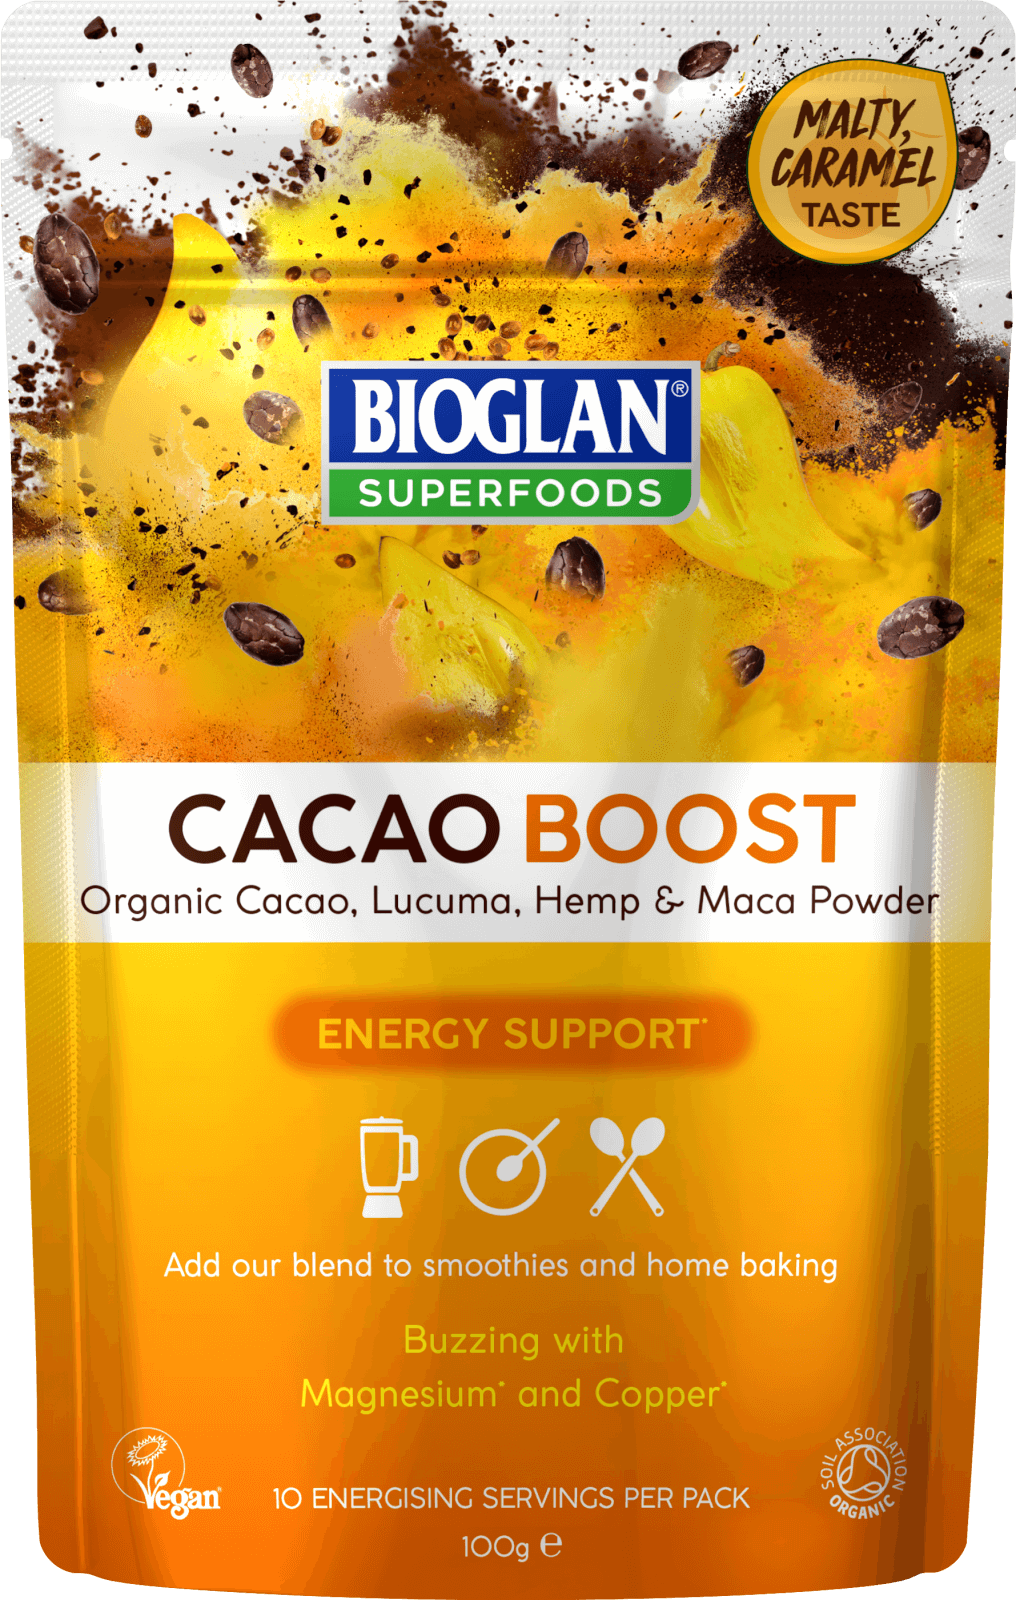 Bioglan Superfoods Supergreens Cacao Boost - 100g